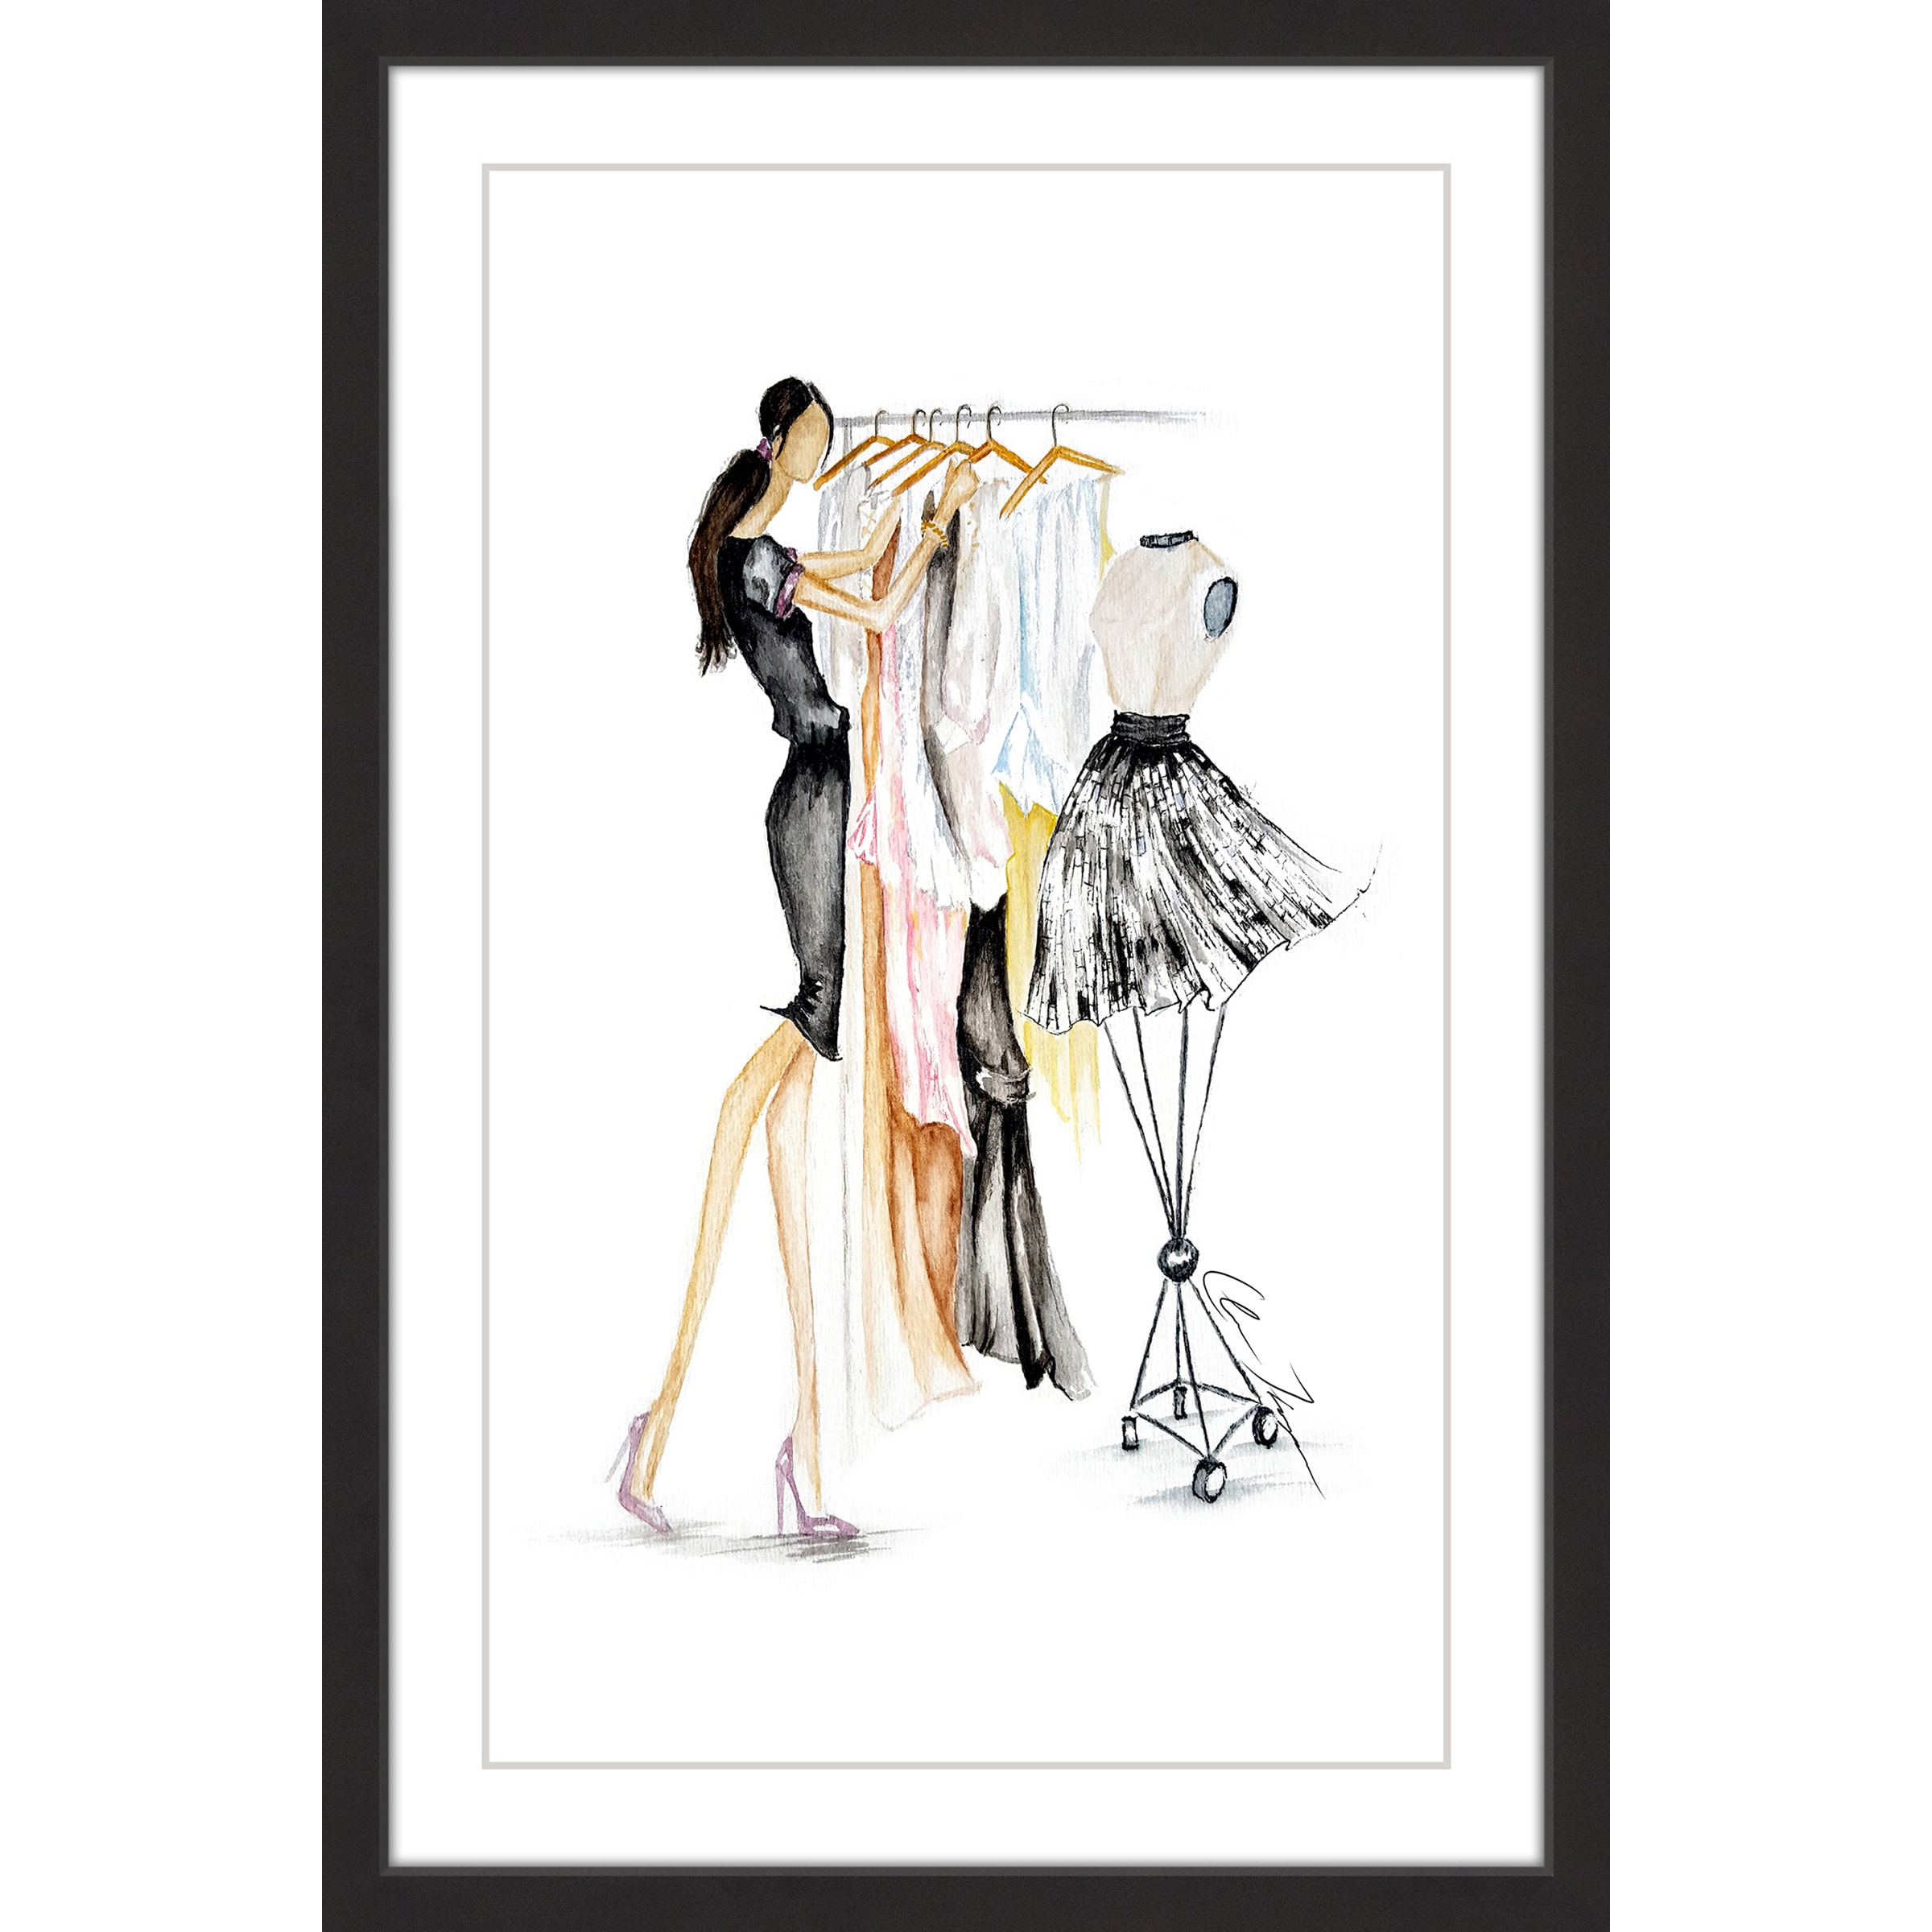 Marmont hill uclothes racku by claire thompson framed painting